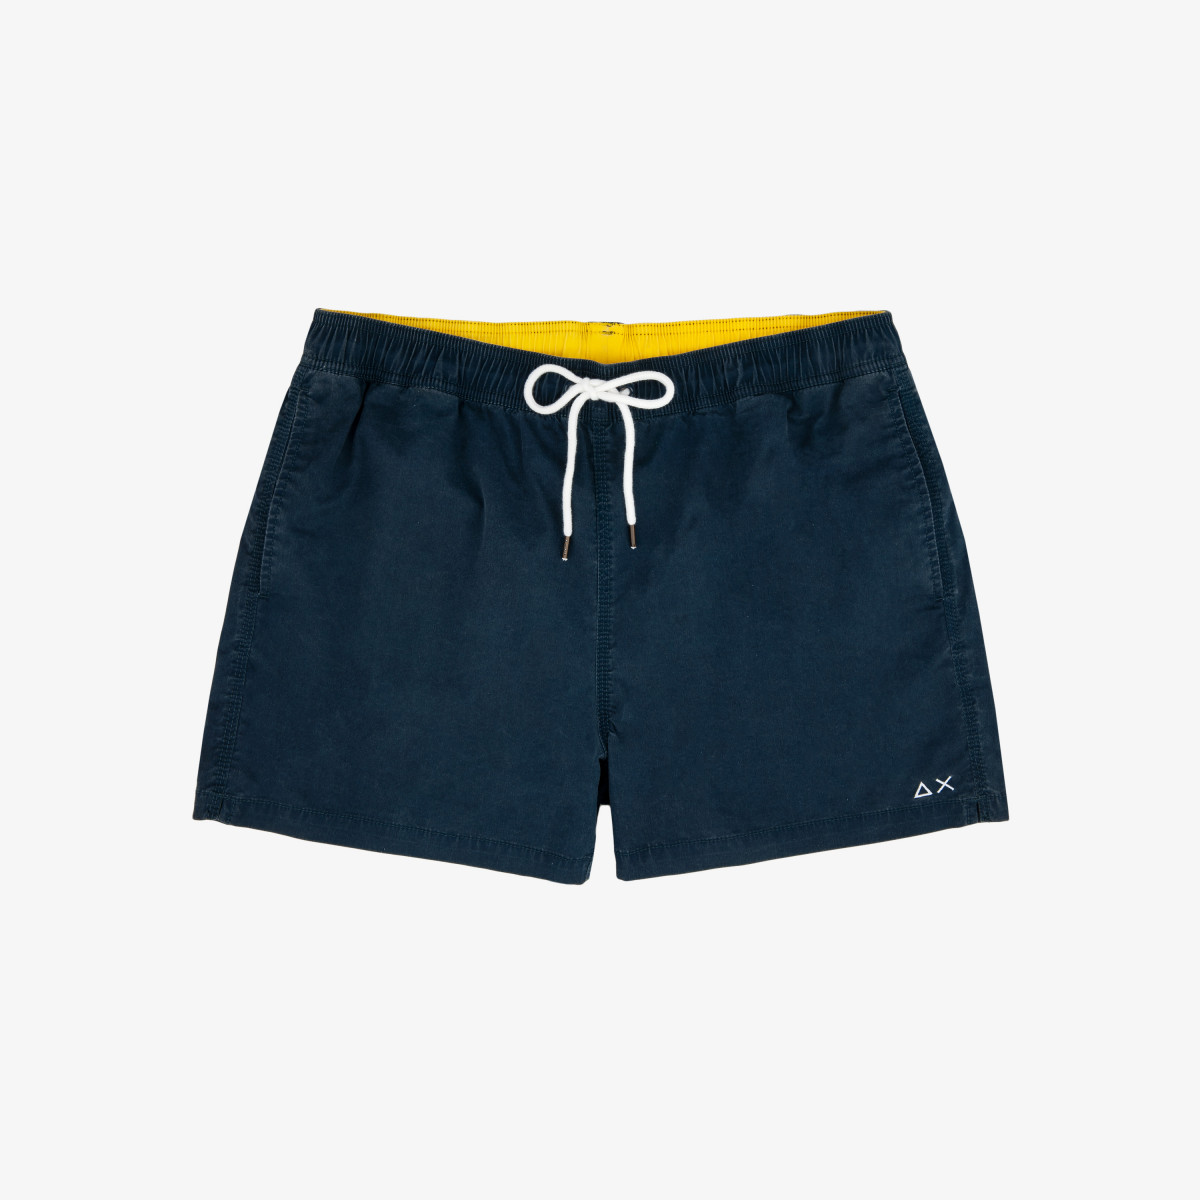 SWIM PANT CLASSIC SOLID NAVY BLUE